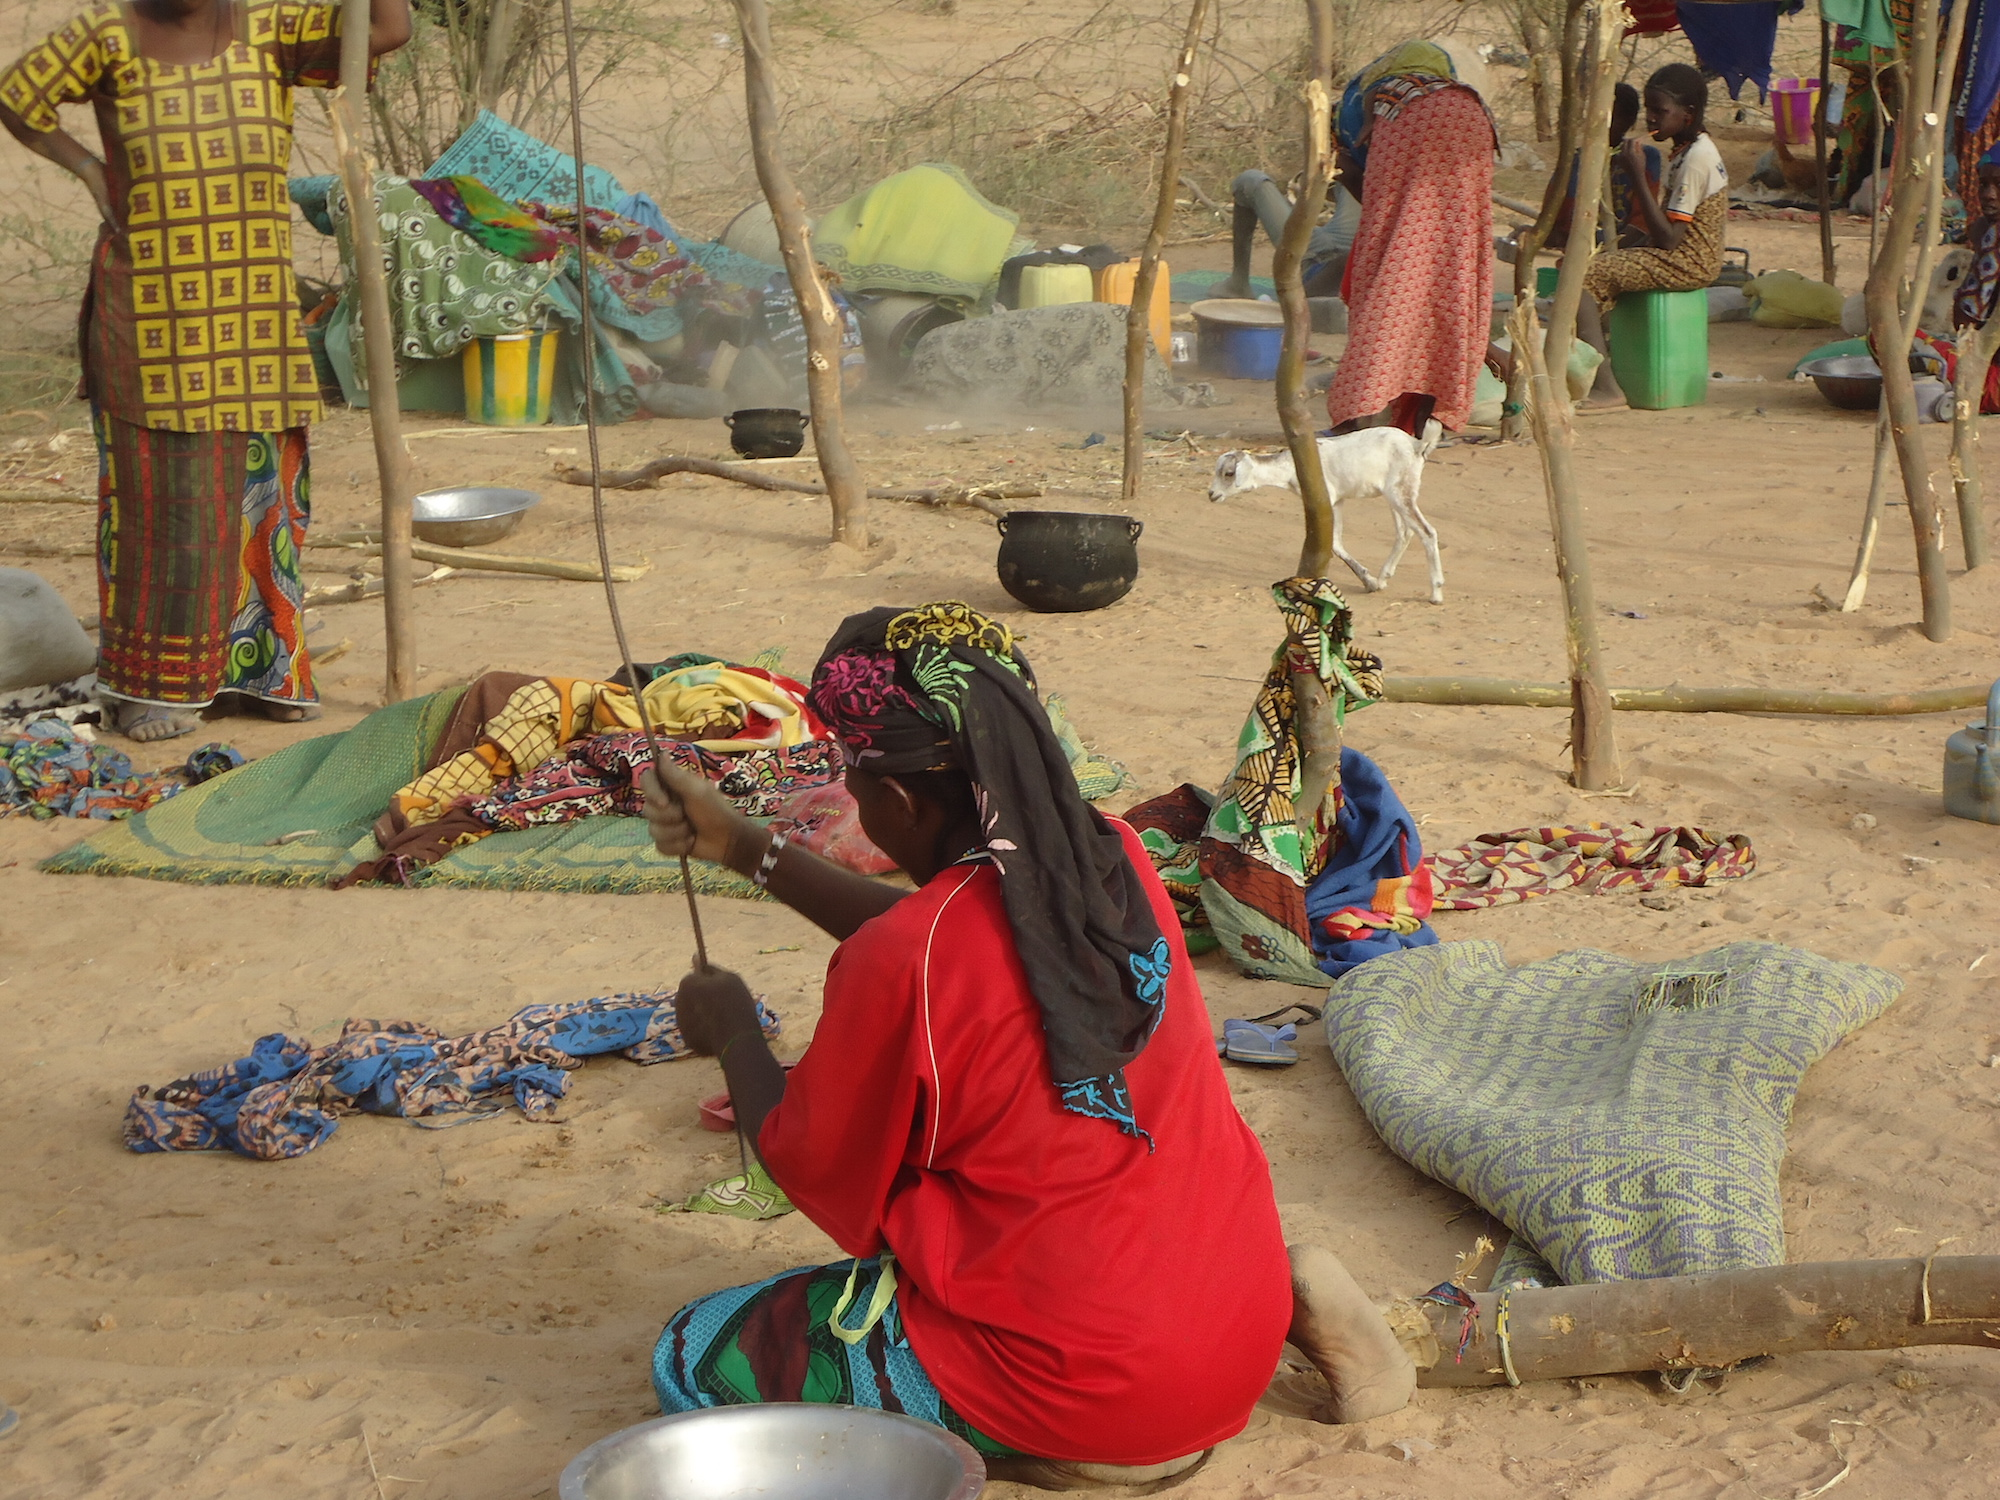 nternally displaced women who fled to the town of Tonka in Mali's Timbuktu region earlier this week set up makeshift shelters.